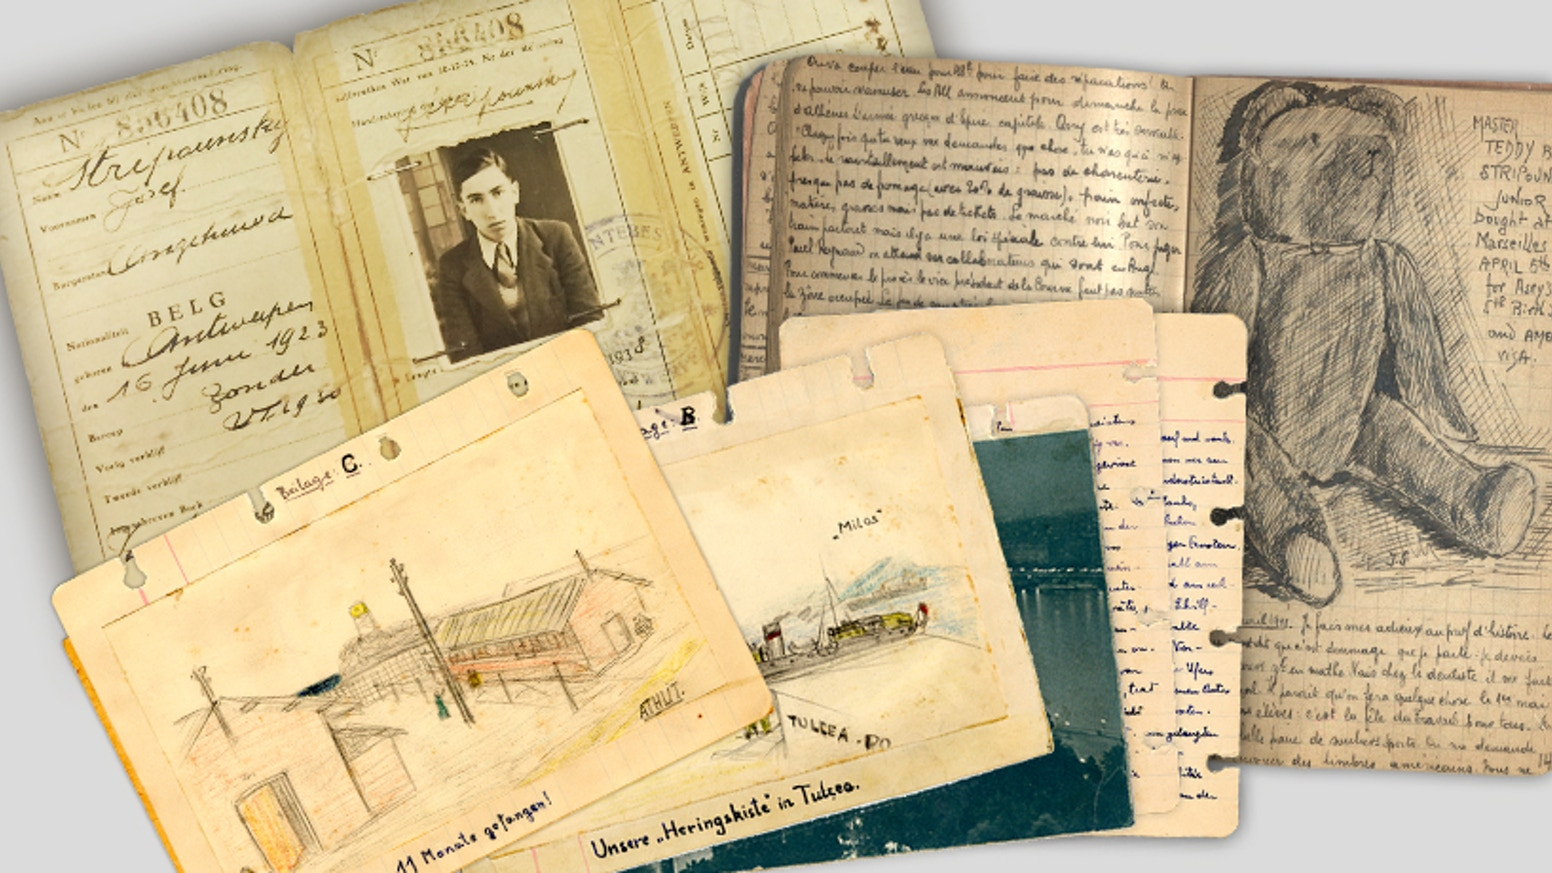 Make the diaries of Holocaust victims and survivors available to everyone by helping us catalog, translate, and publish them online.